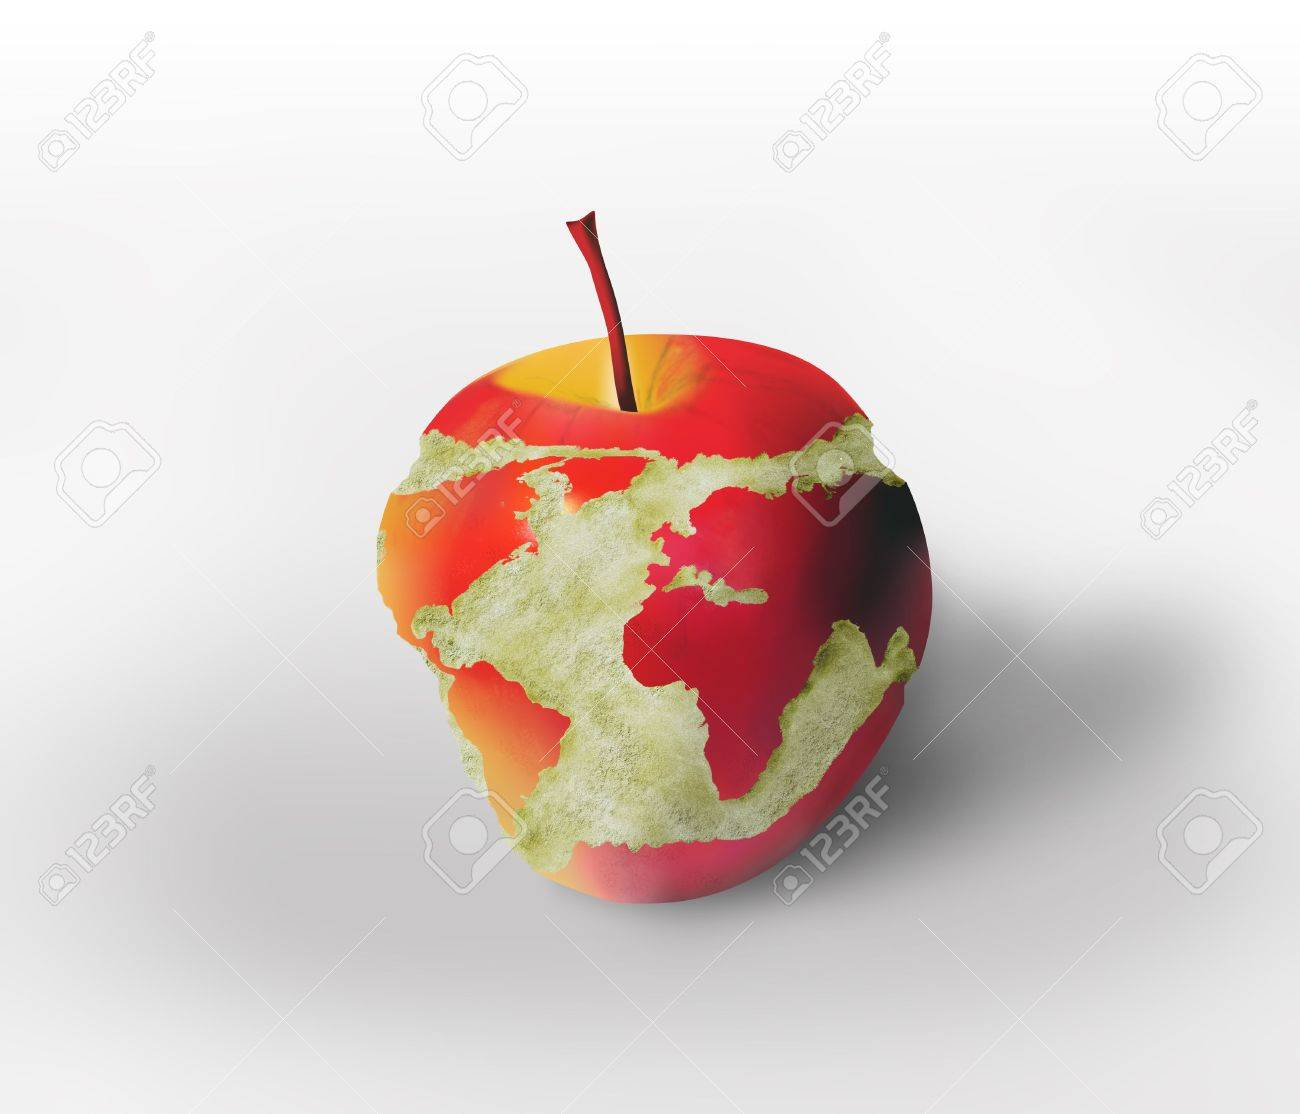 World map carved in the apple stock photo picture and royalty free stock photo world map carved in the apple gumiabroncs Gallery